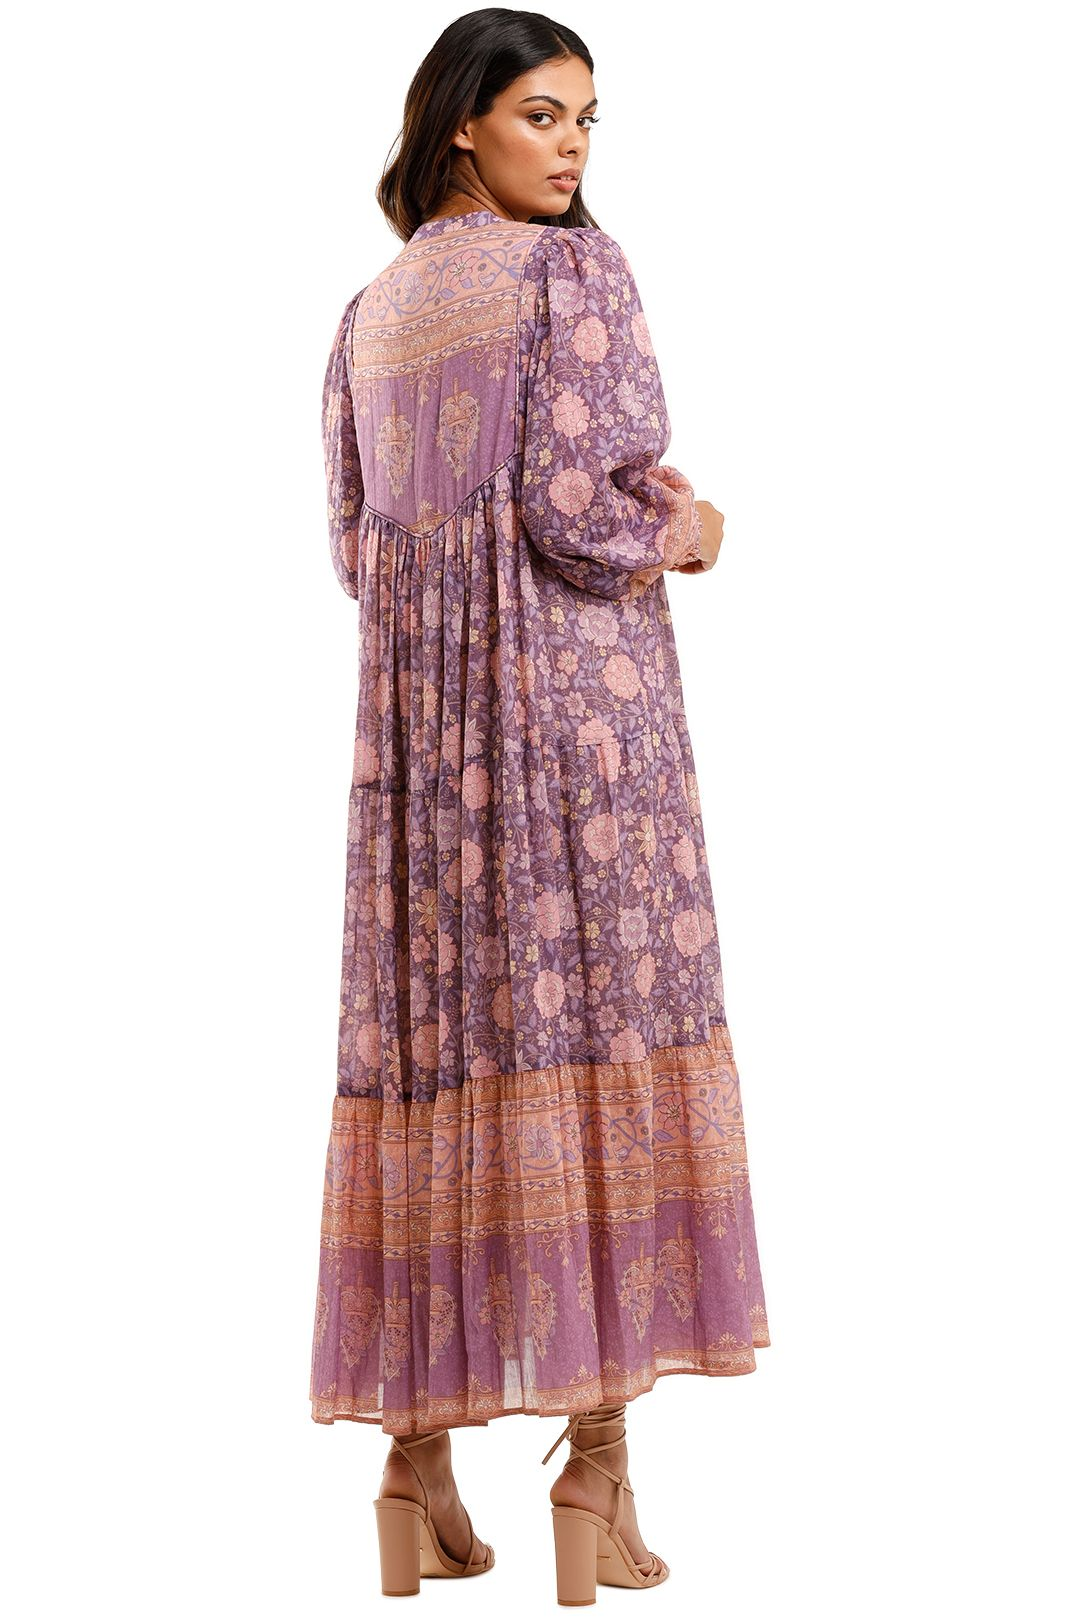 Spell Love Story Gown Royal Lilac